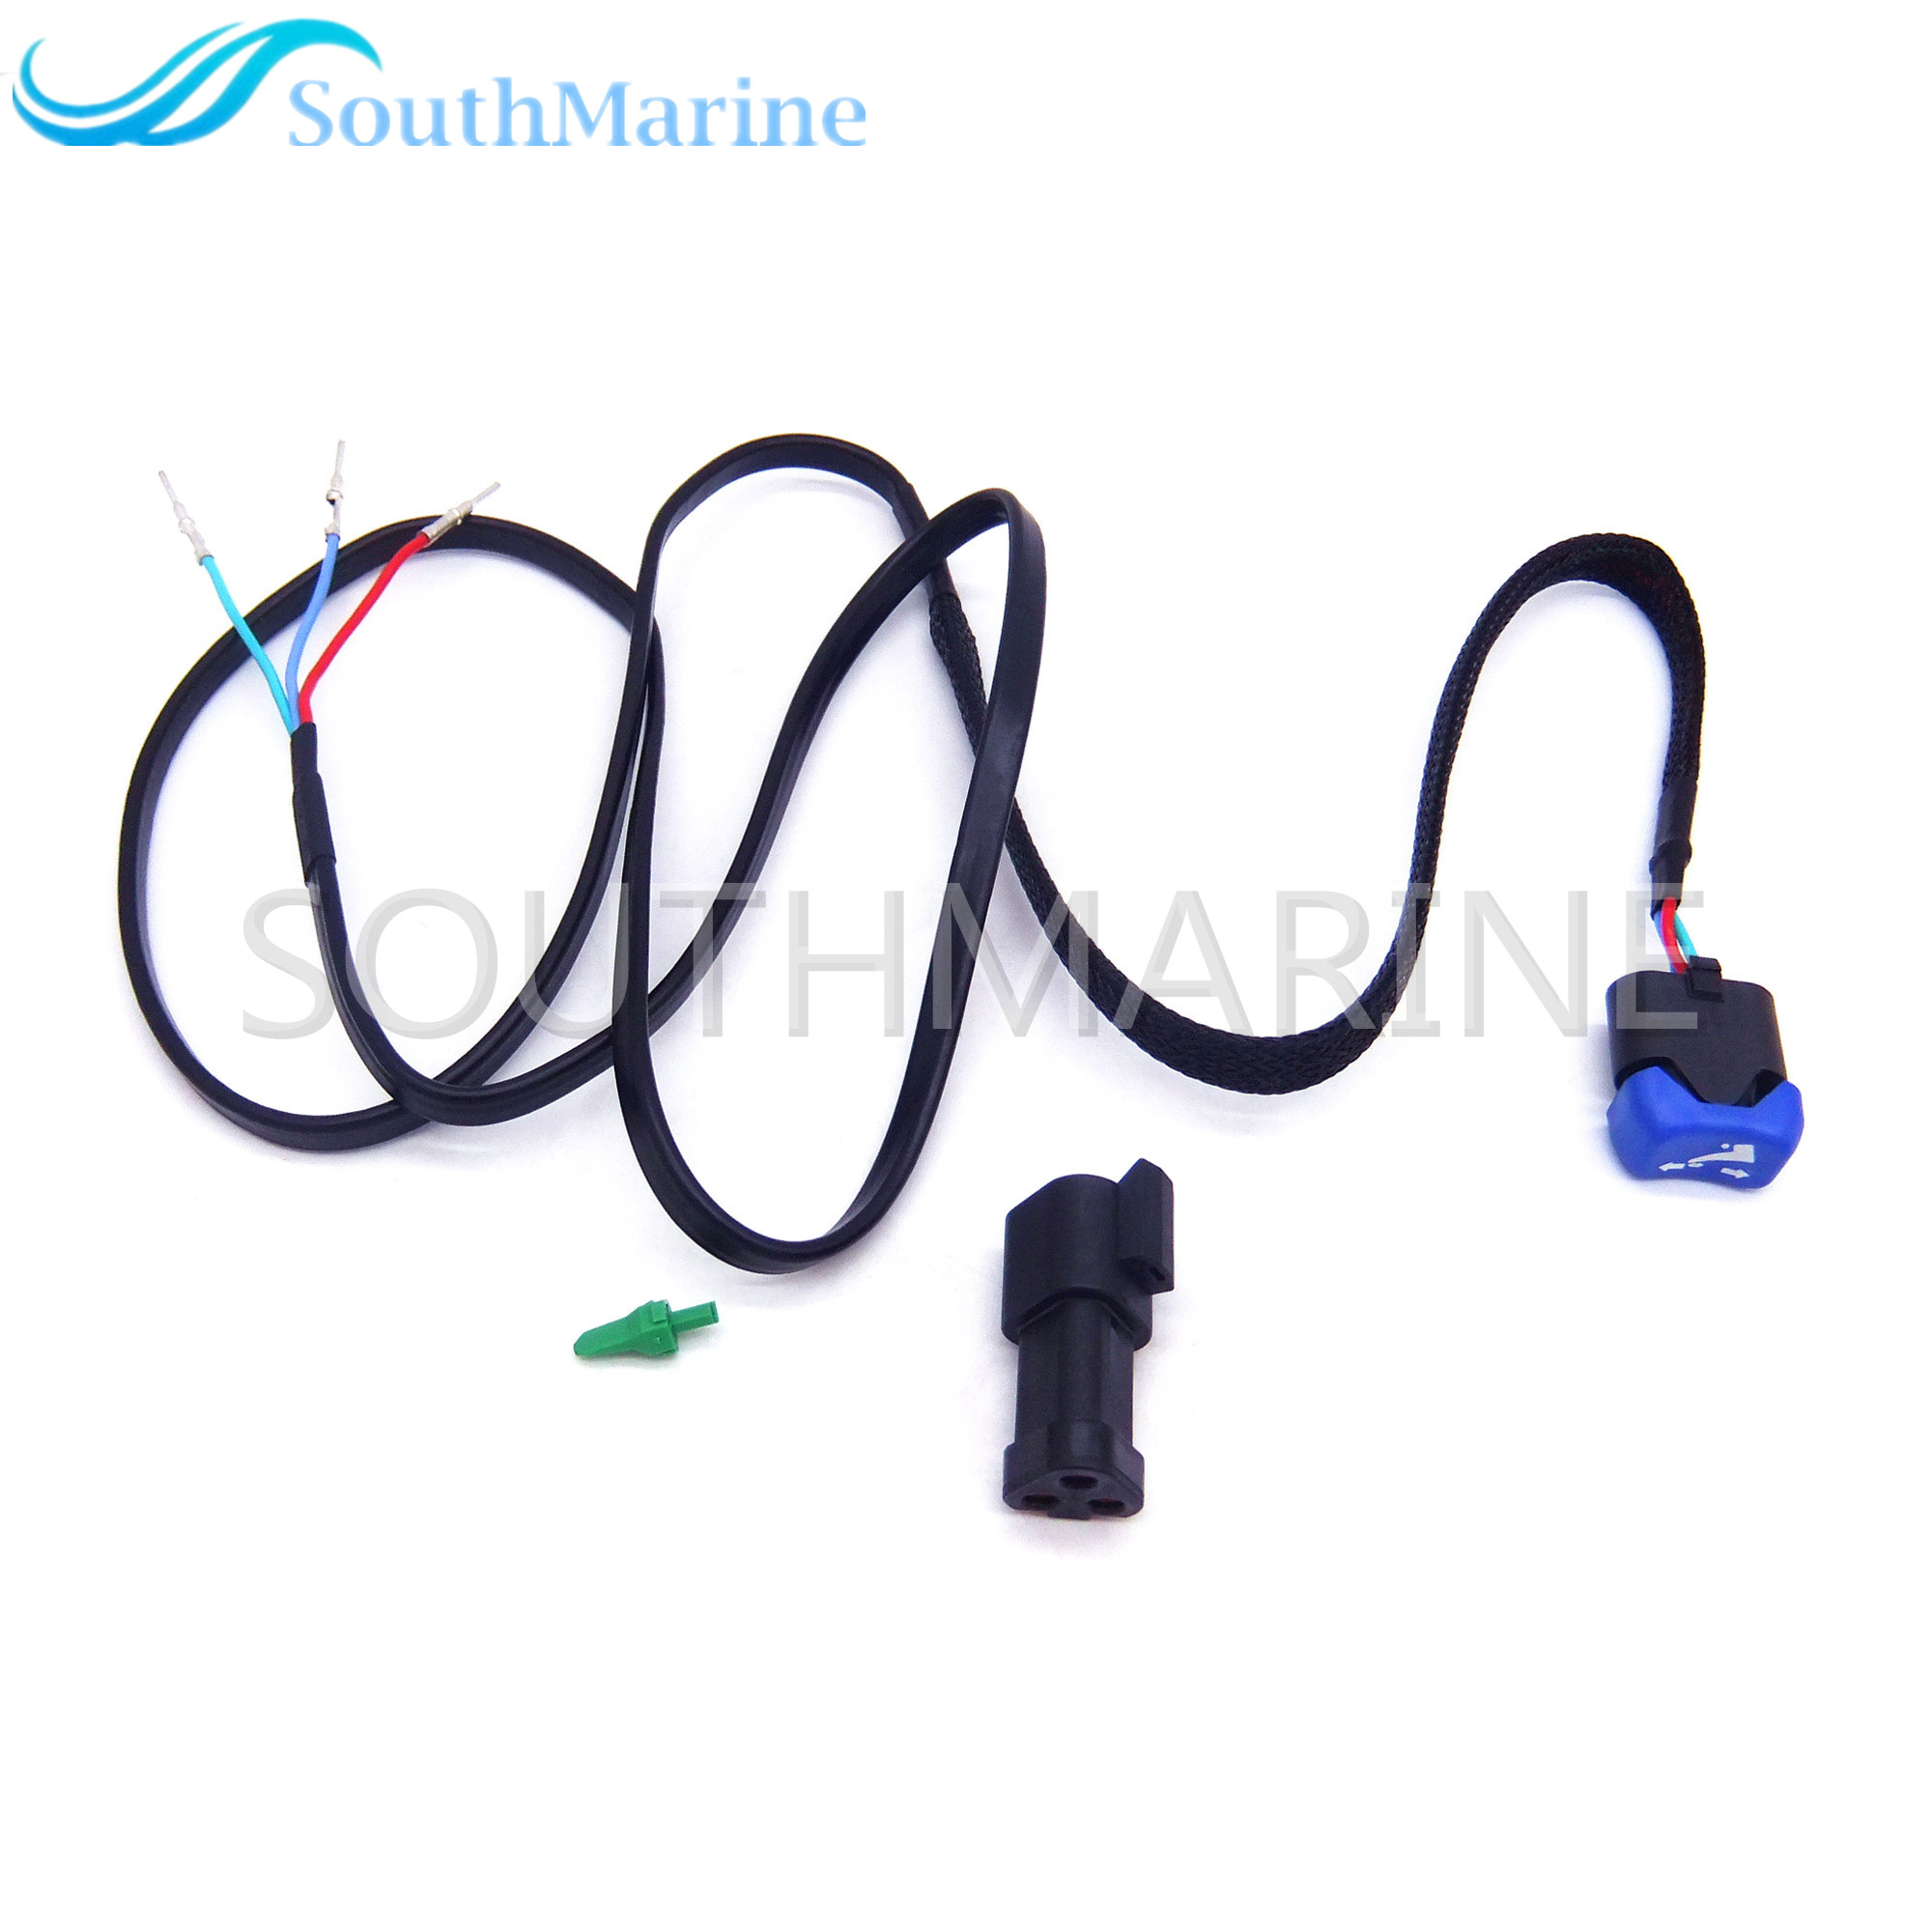 medium resolution of magideal 175974 5005801 ignition switch key assembly with lanyard for omc johnson evinrude 40